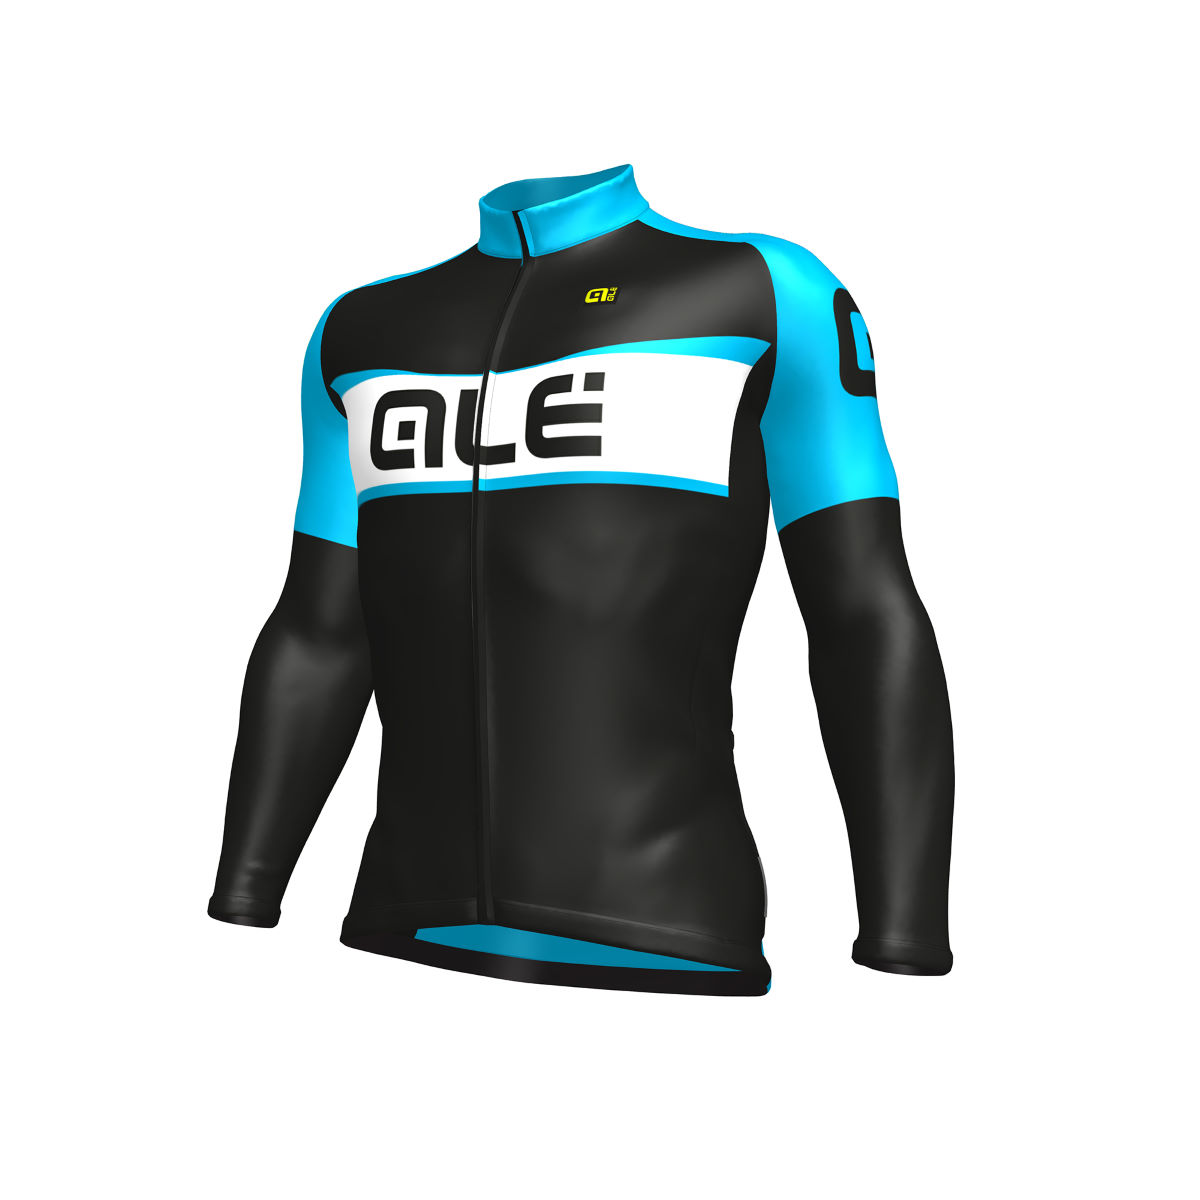 Alé Excel Weddell Long Sleeve Jersey - Small Black/Blue